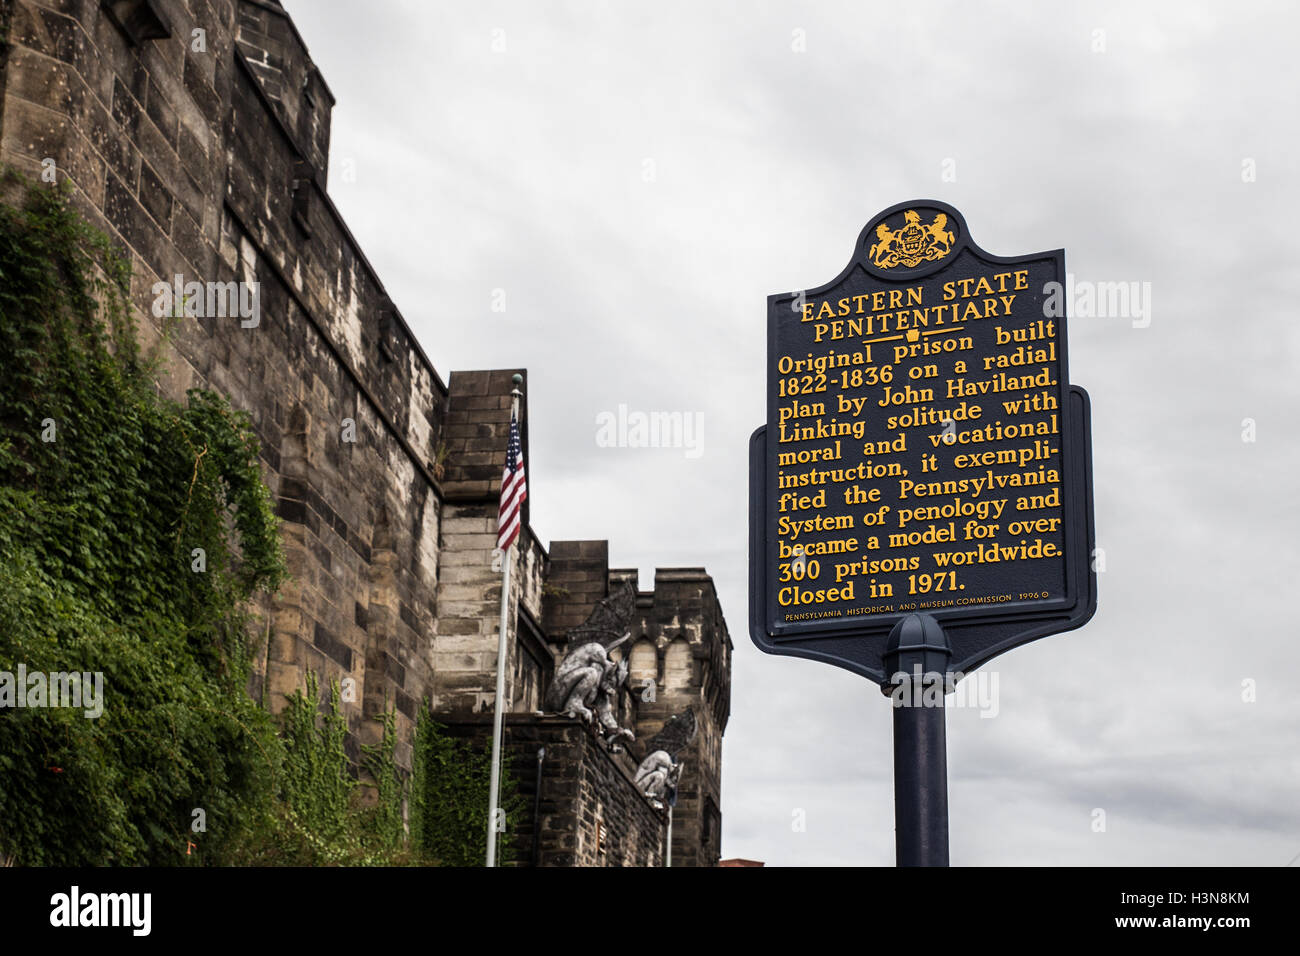 Sign marking historic Eastern State Penitentiary in Philadelphia PA - Stock Image